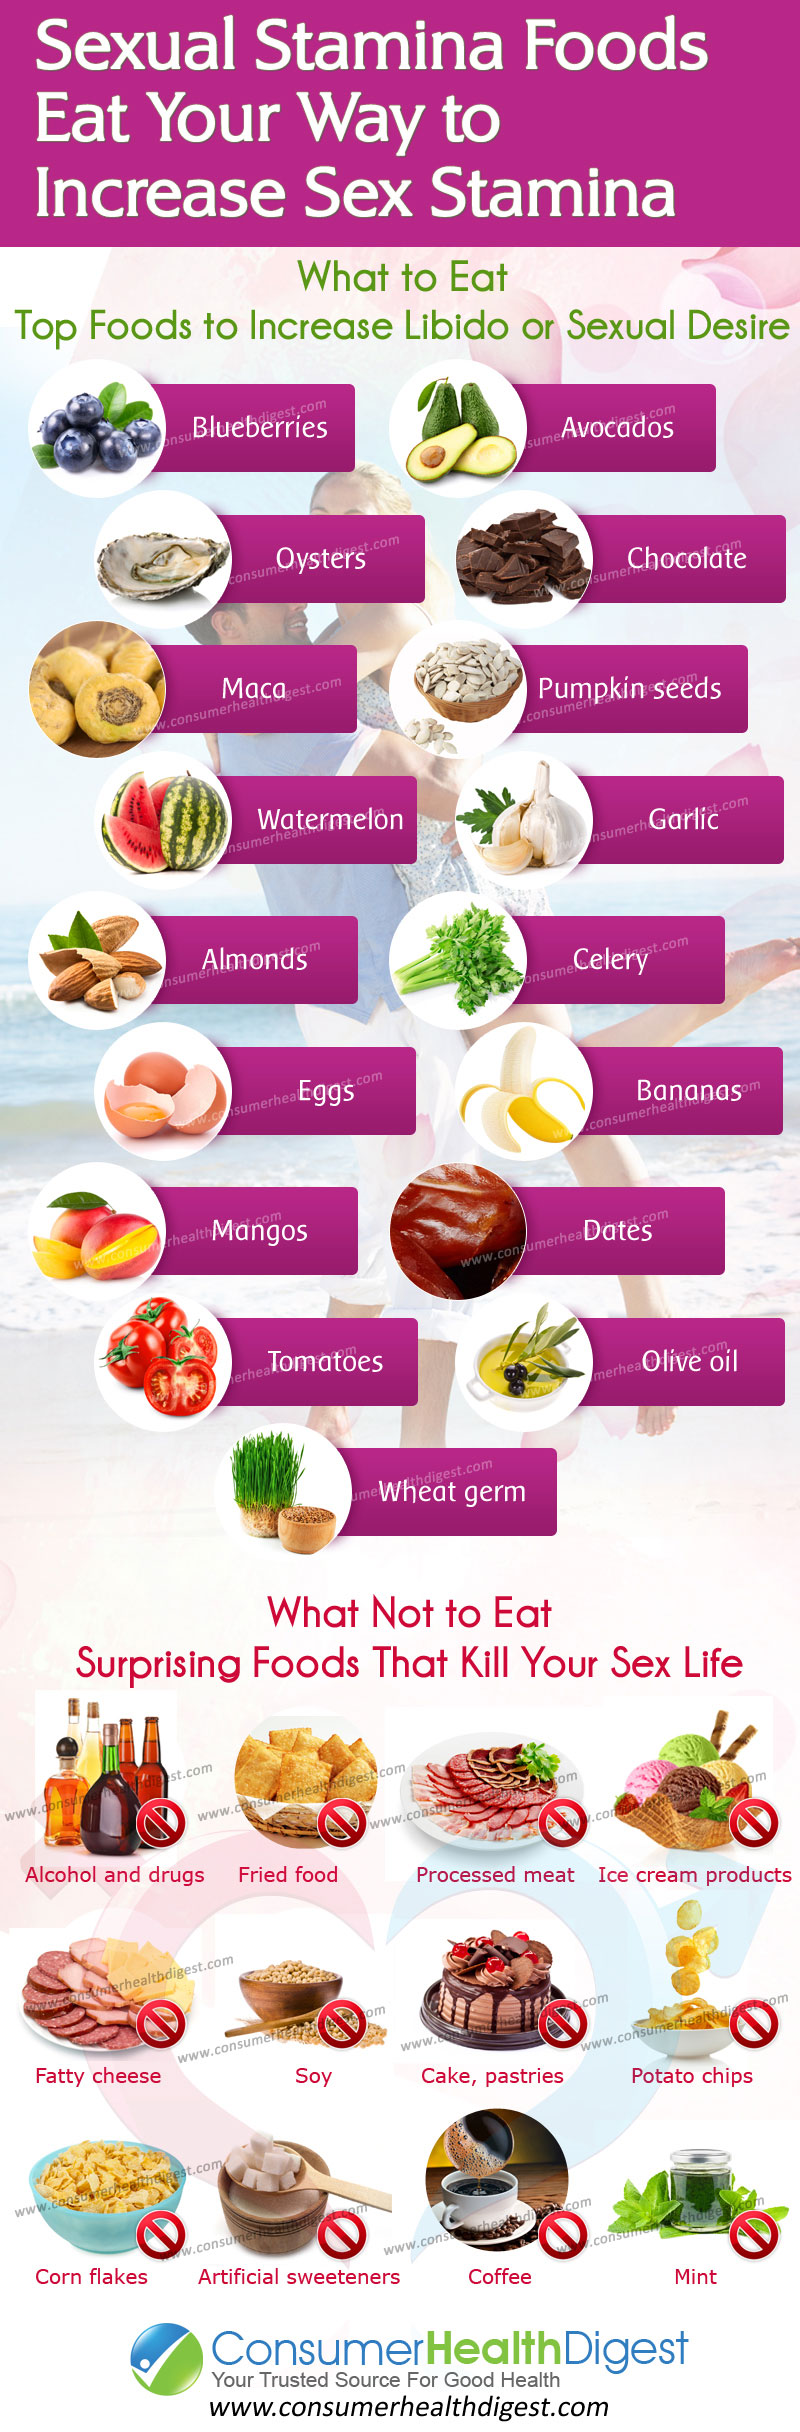 Top foods to increase libido or sexual desire my health tips - Food Sexual Stamina Foods Eat Your Way To Increase